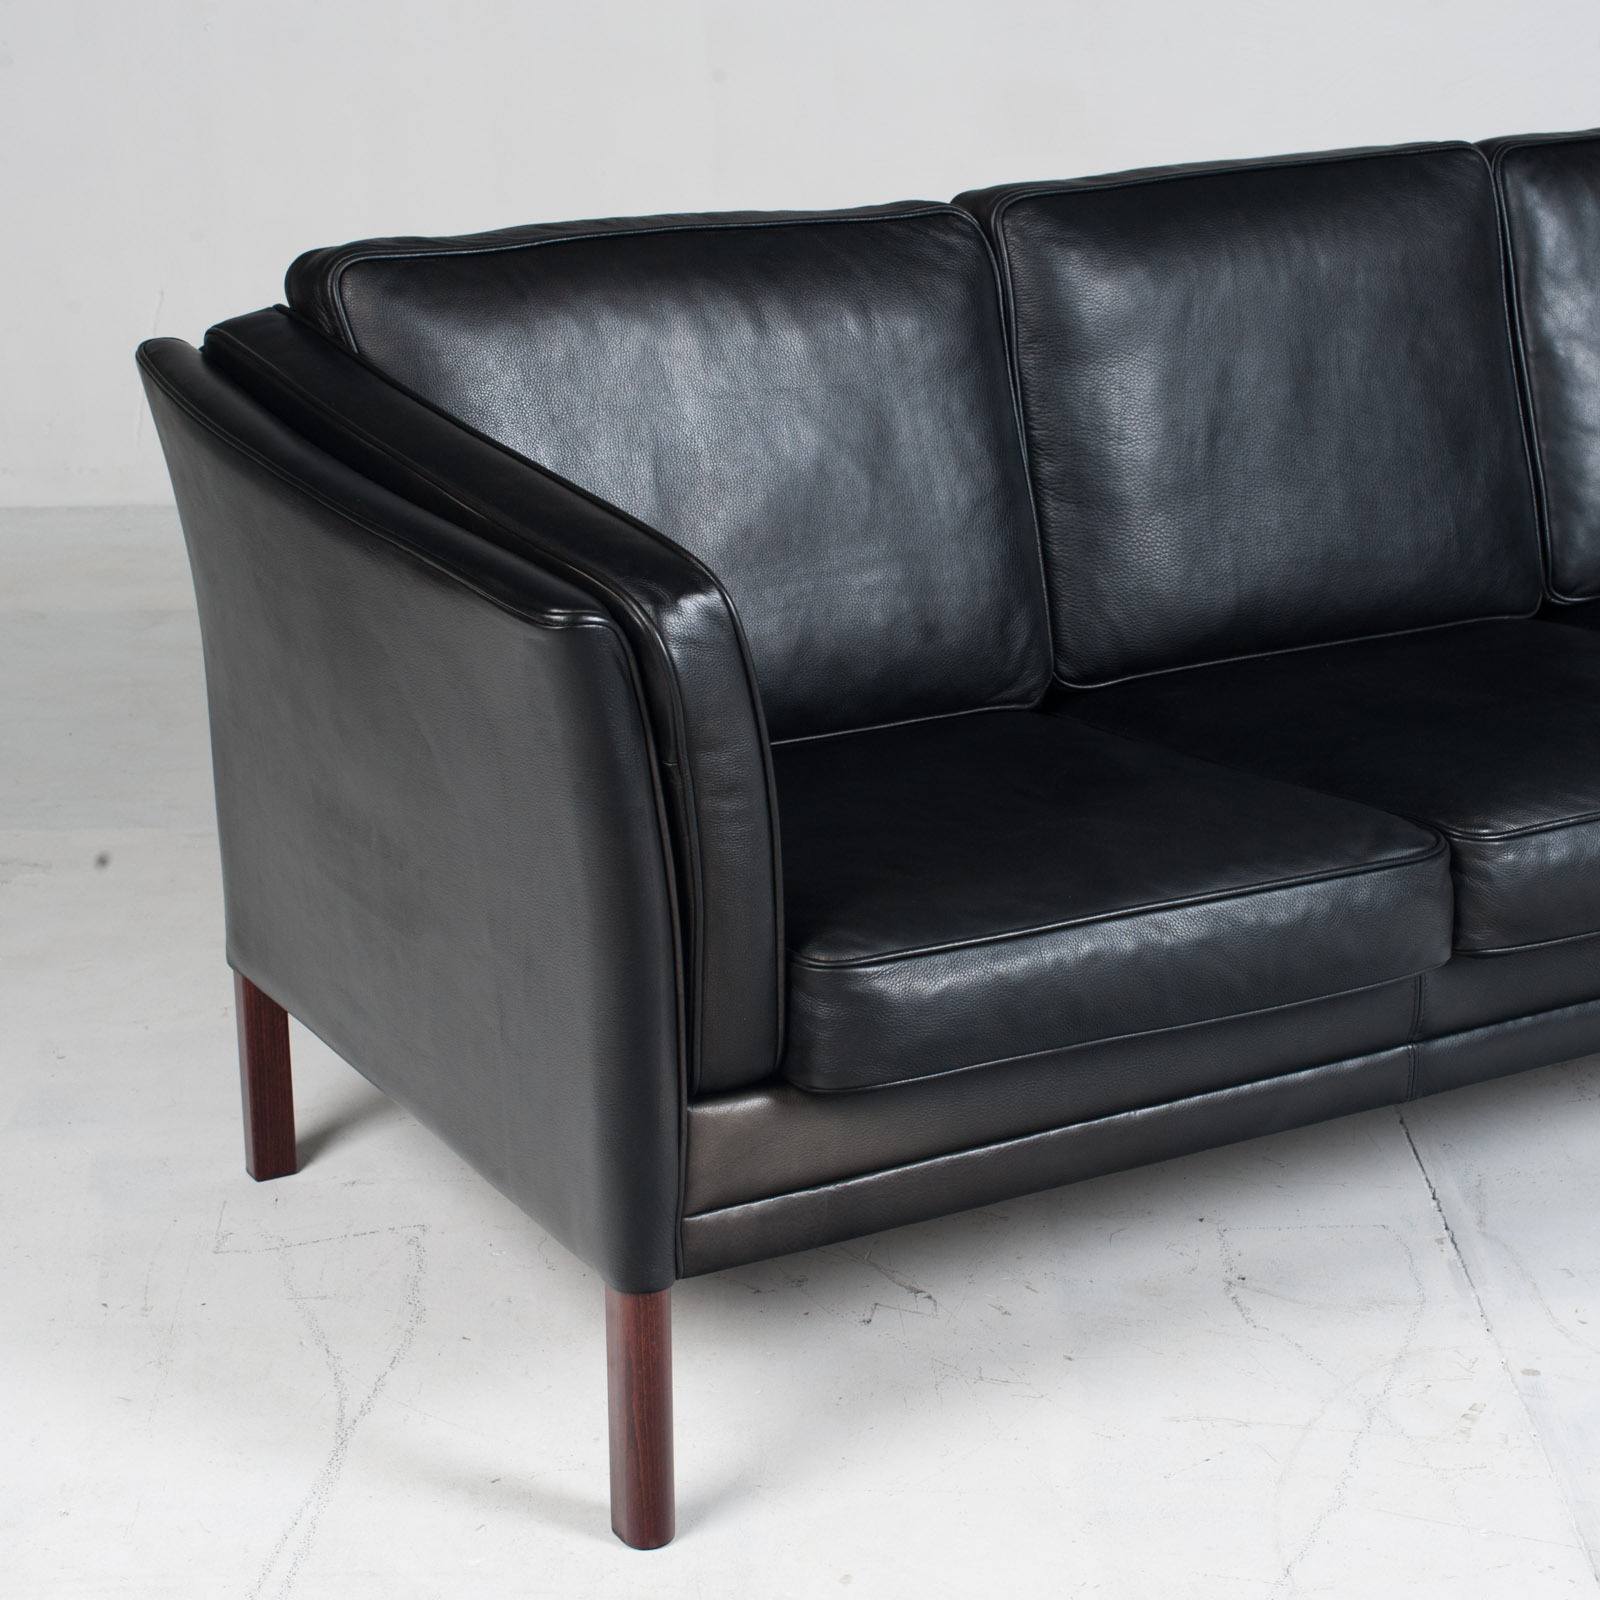 3 Seat Sofa In Black Aniline Leather 1960s Denmark 03